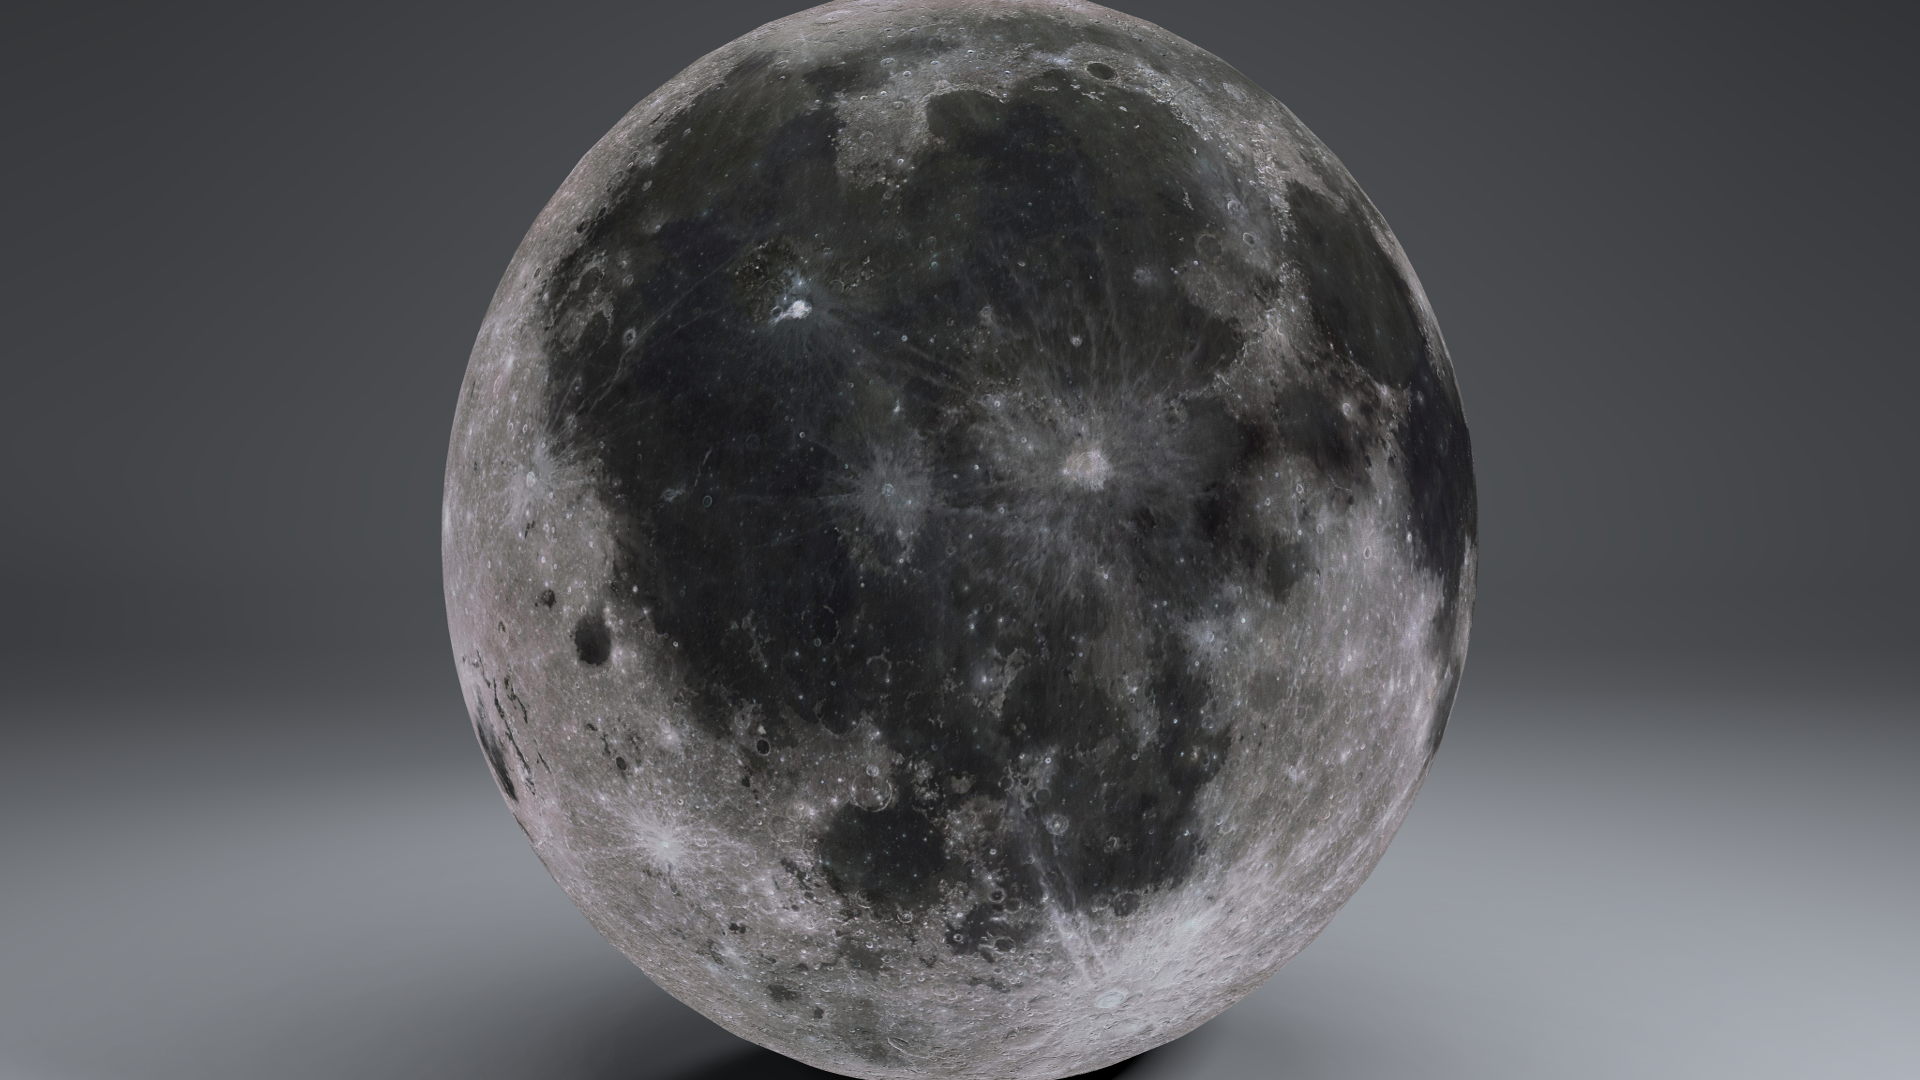 moonglobe 8k 3d model 3ds fbx blend dae obj 221863